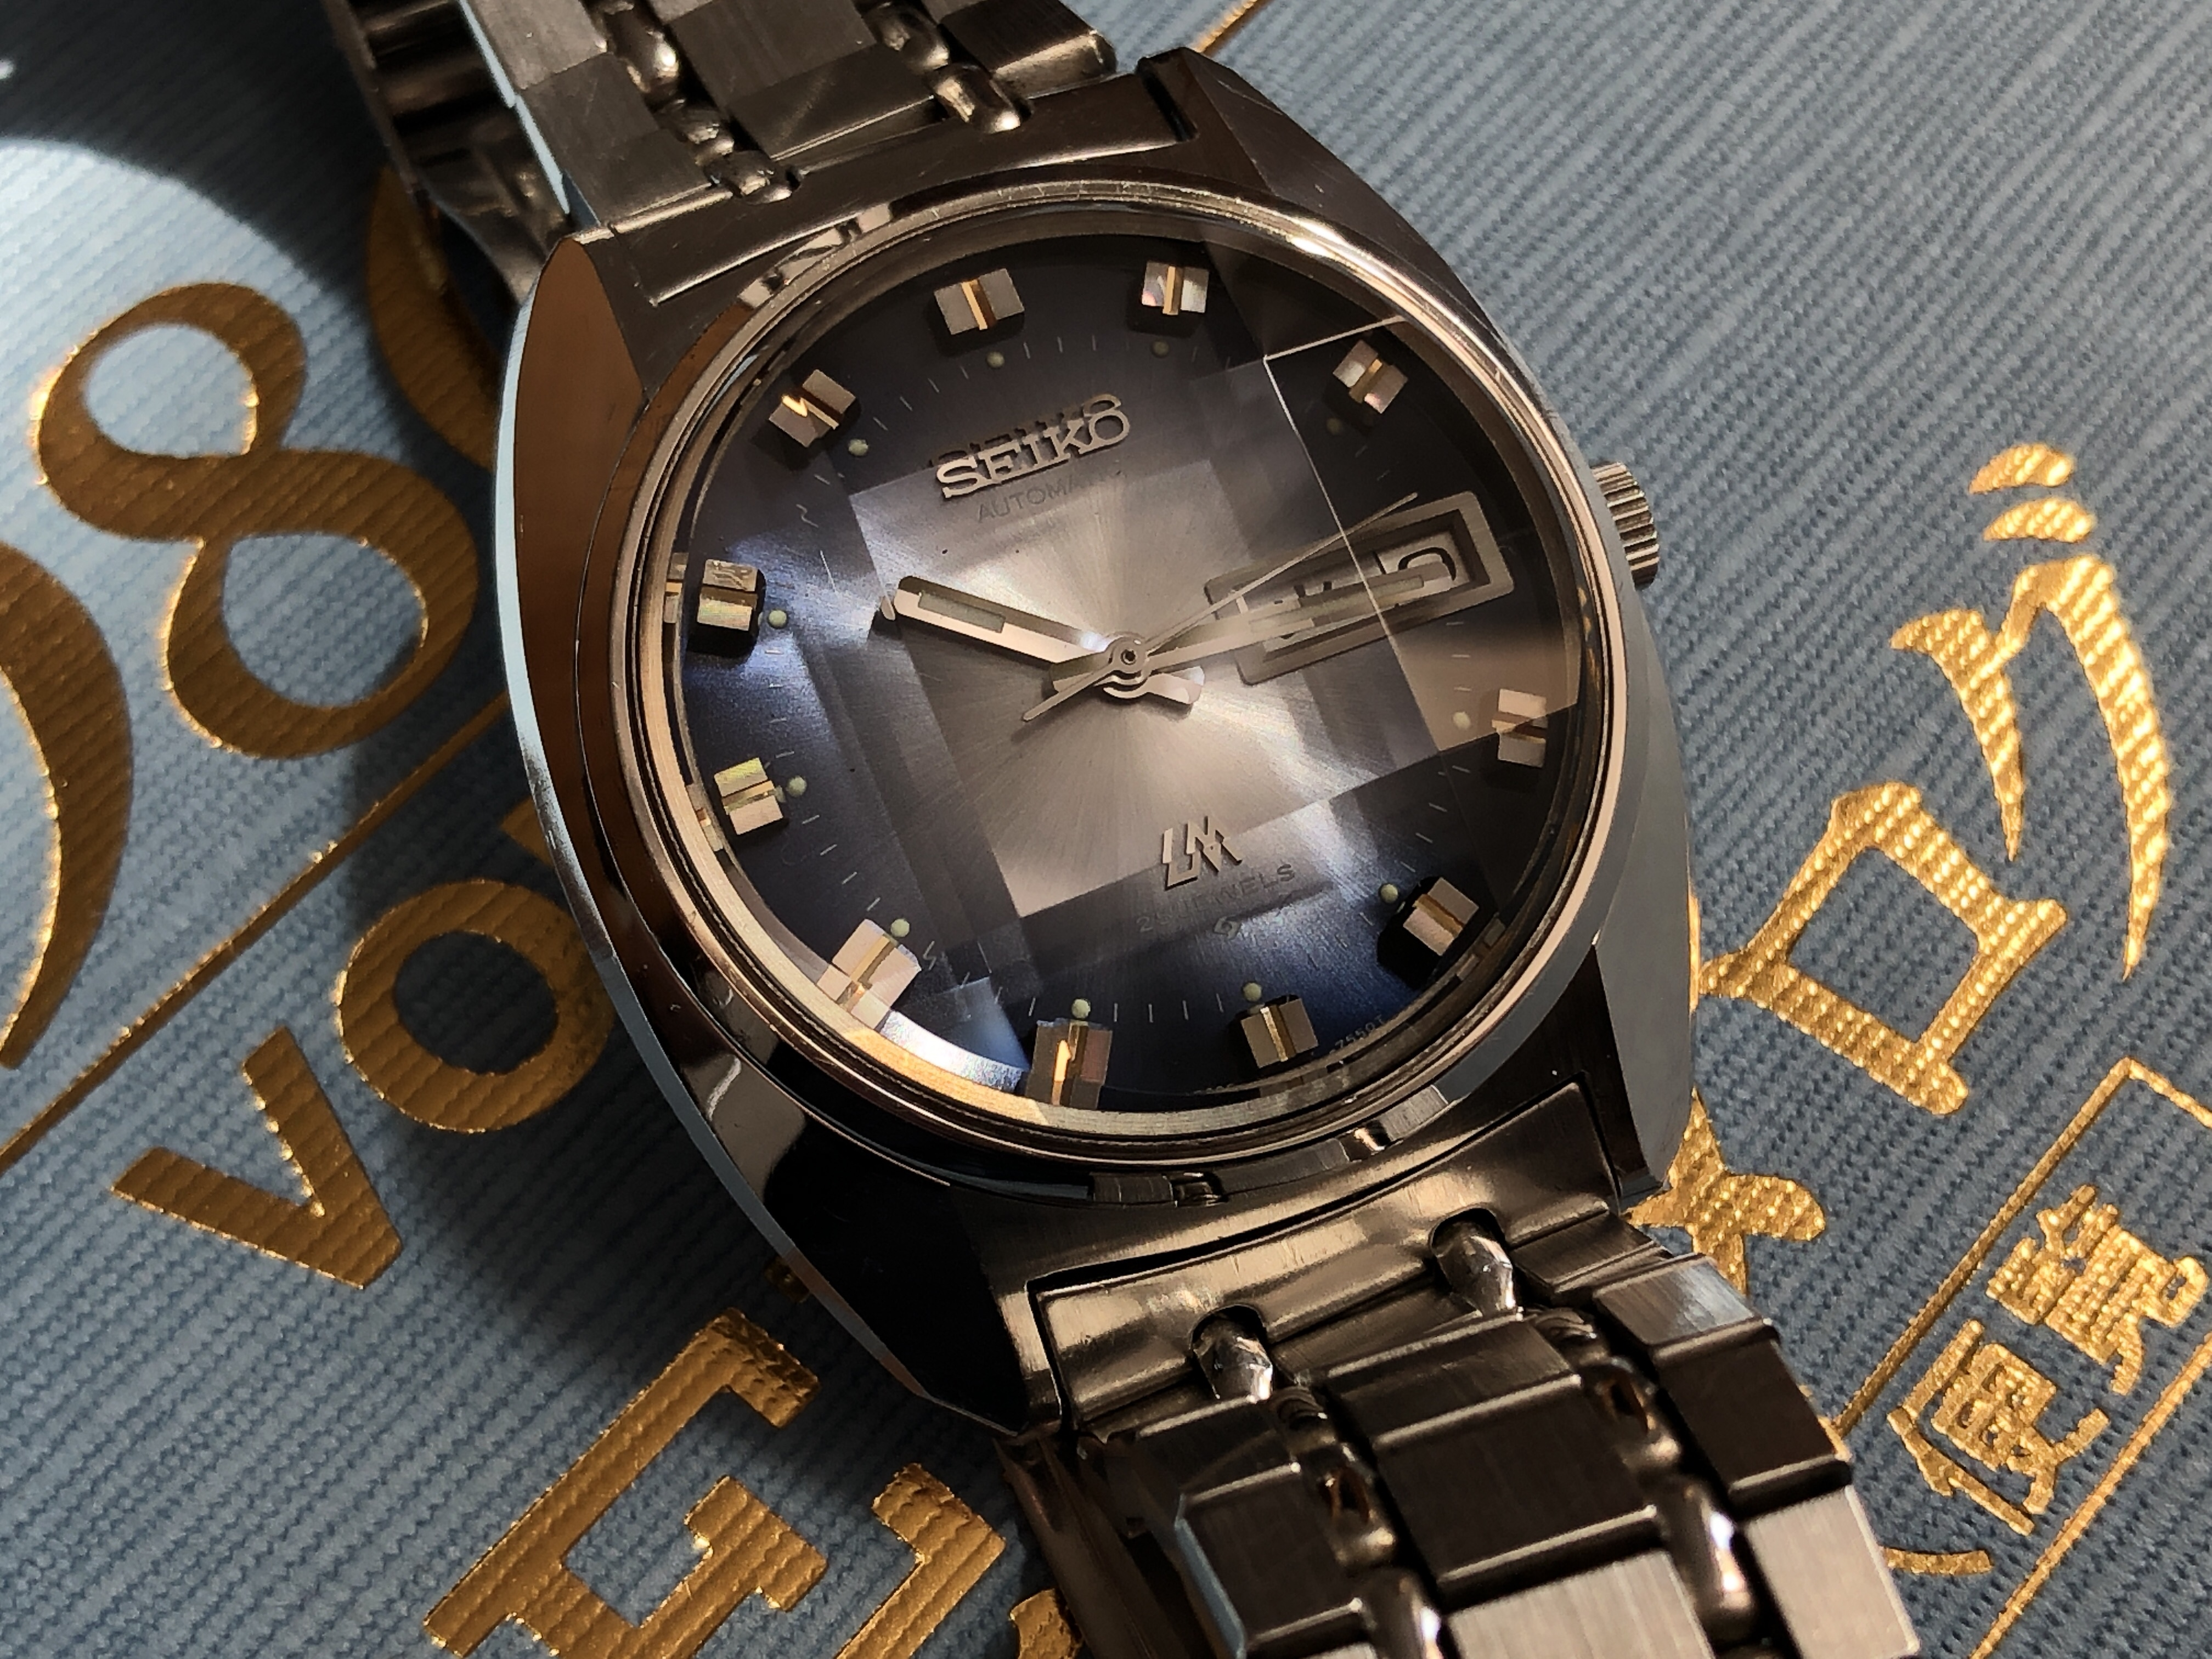 Seiko Lord-Matic 5606-7230 (For sale)